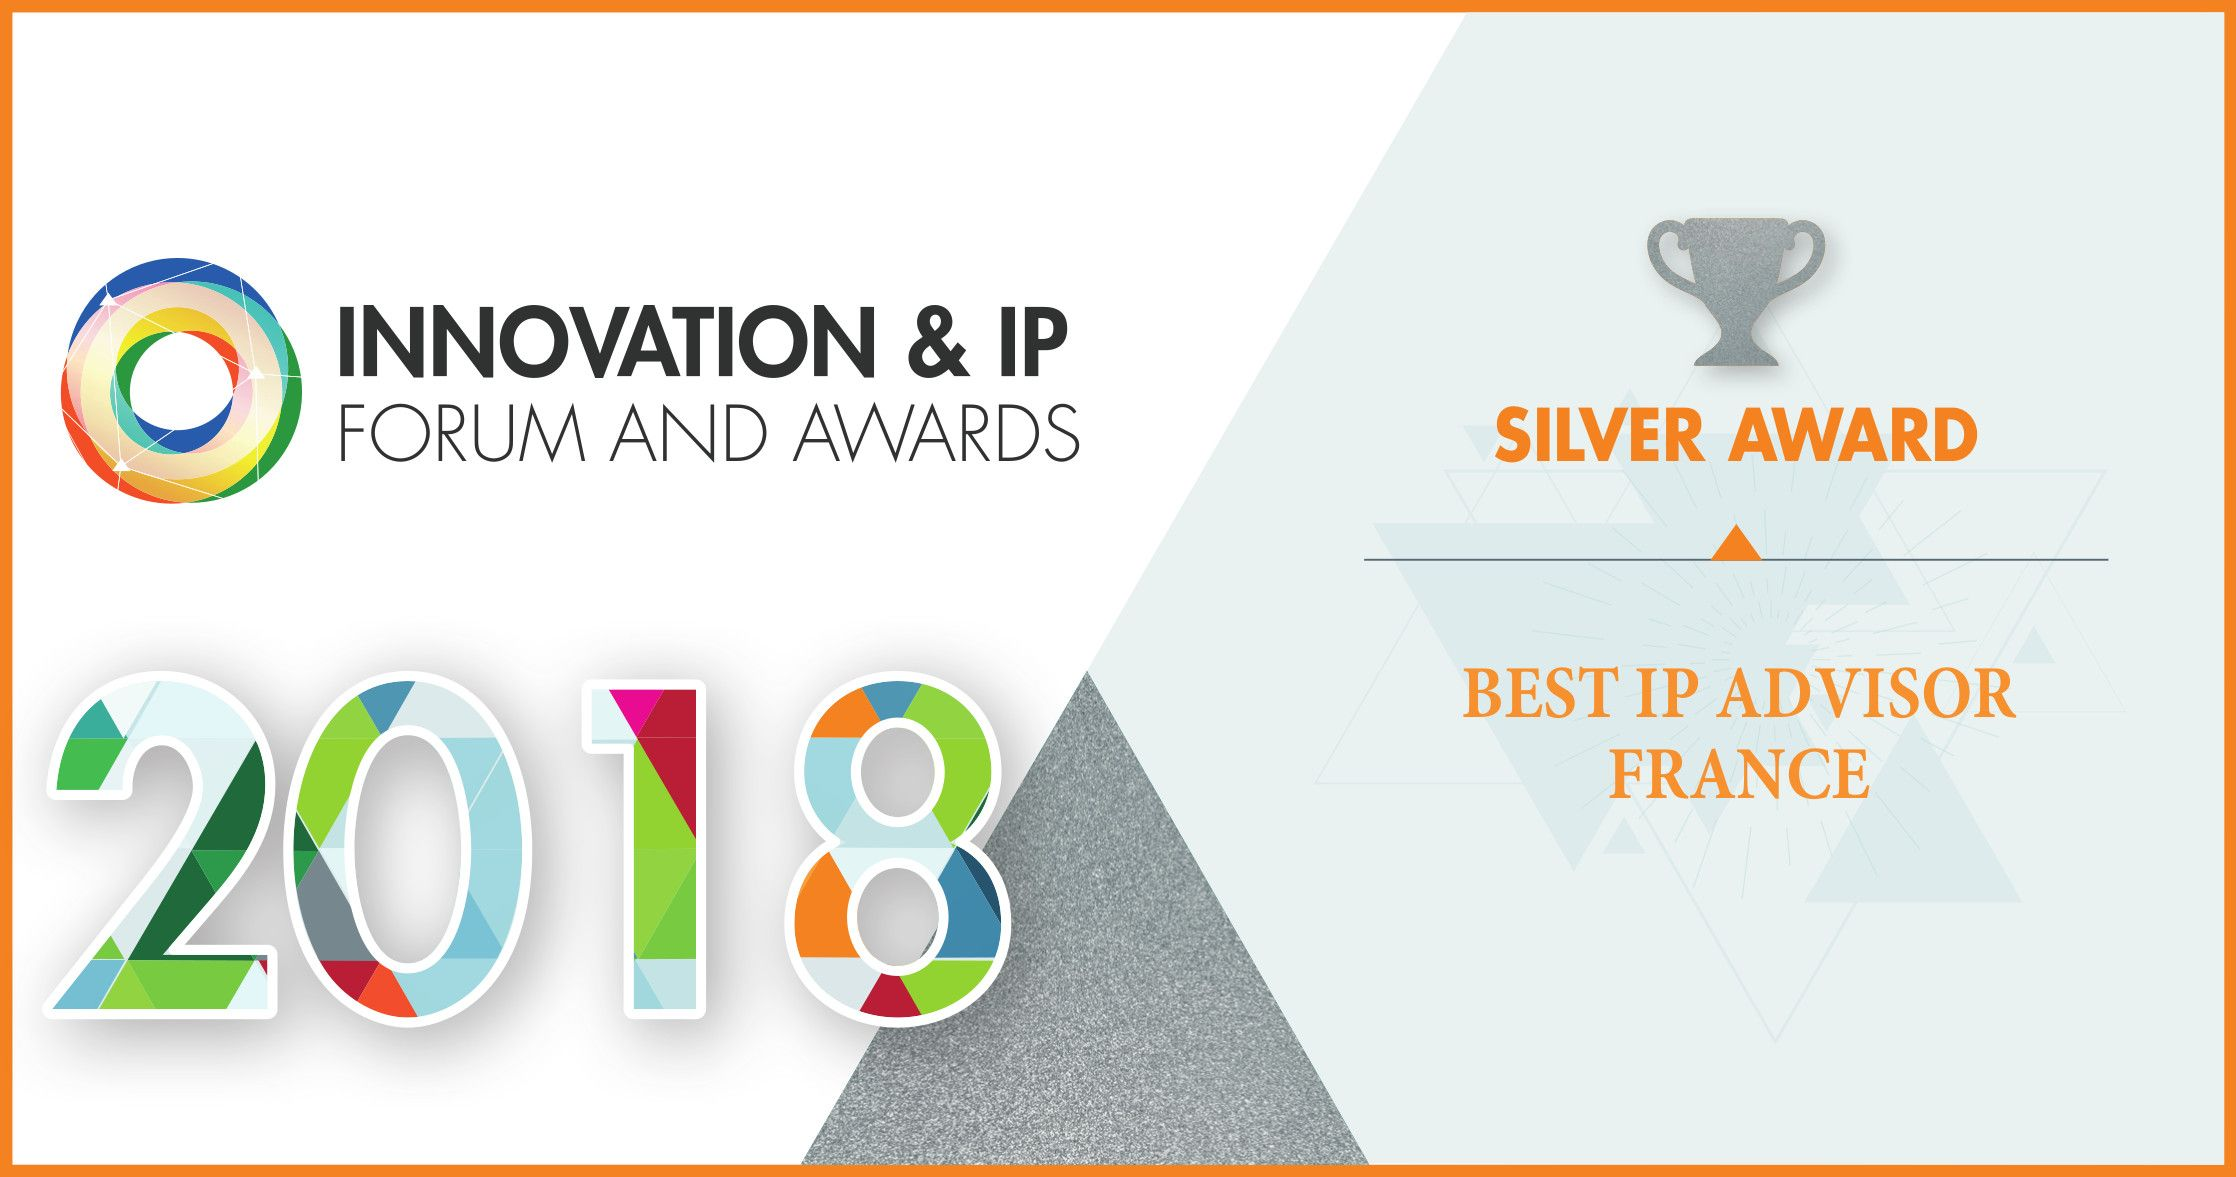 IPSIDE Silver Award Best IP Advisor France 2018